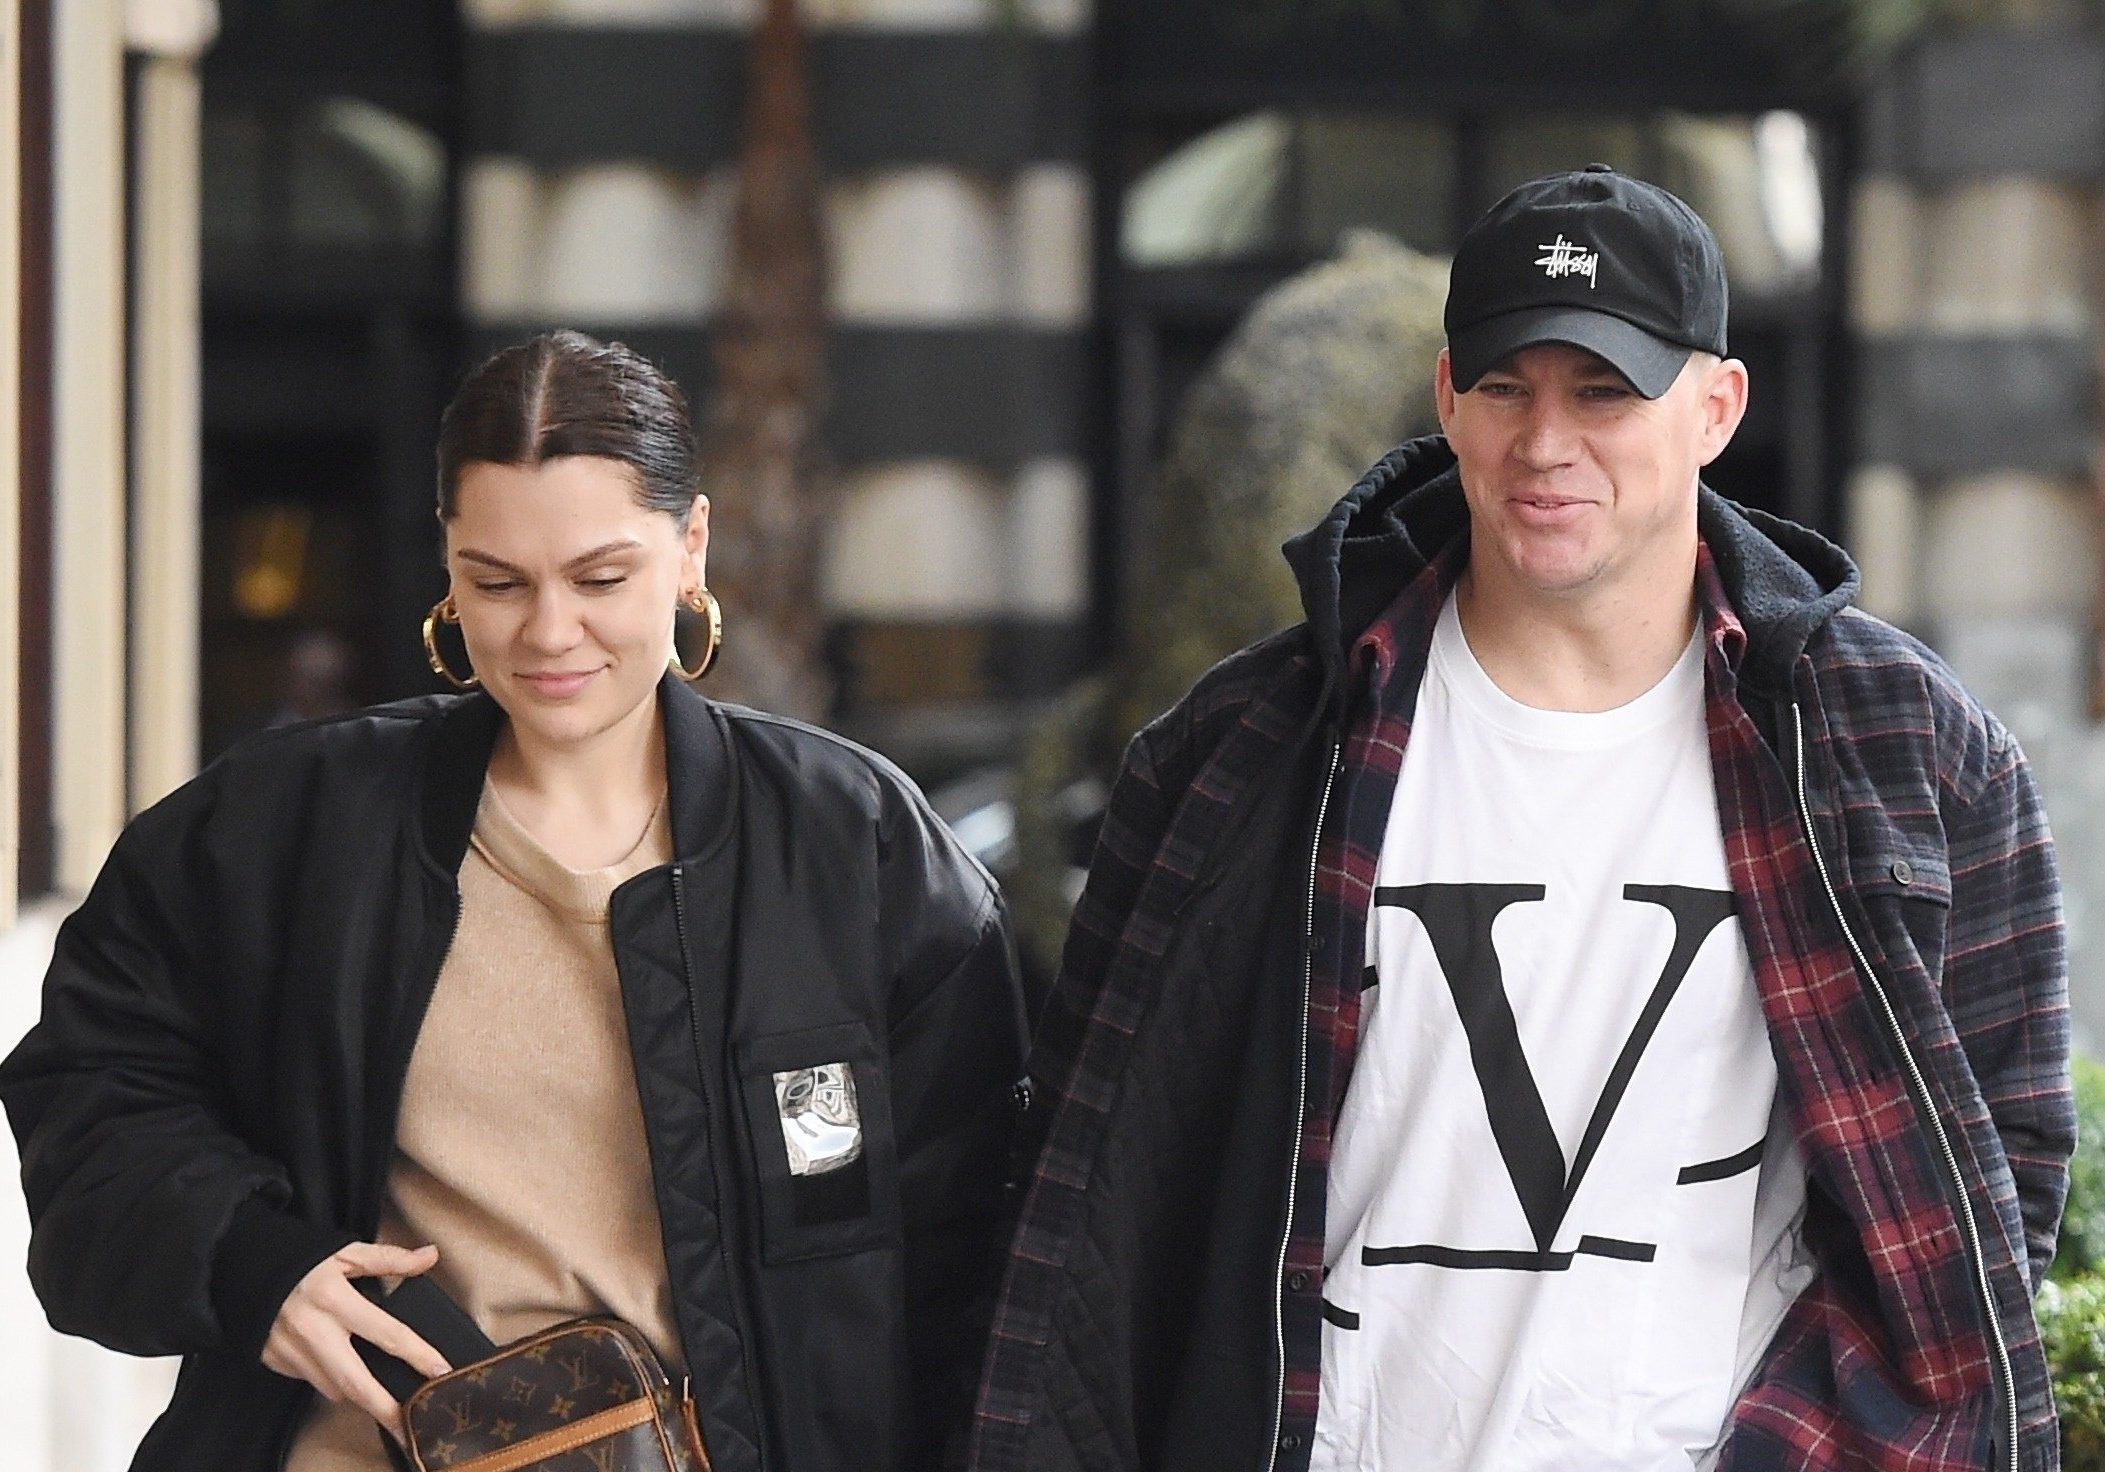 BGUK_1516909 - London, UNITED KINGDOM - English singer Jessie J and actor boyfriend Channing Tatum pictured out and about holding hands in London. The happy couple looked relaxed as they enjoyed the Spring sunshine in London together after having sim lunch together! Pictured: Jessie J and Channing Tatum BACKGRID UK 14 MARCH 2019 BYLINE MUST READ: Zed Jameson / BACKGRID UK: +44 208 344 2007 / uksales@backgrid.com USA: +1 310 798 9111 / usasales@backgrid.com *UK Clients - Pictures Containing Children Please Pixelate Face Prior To Publication*